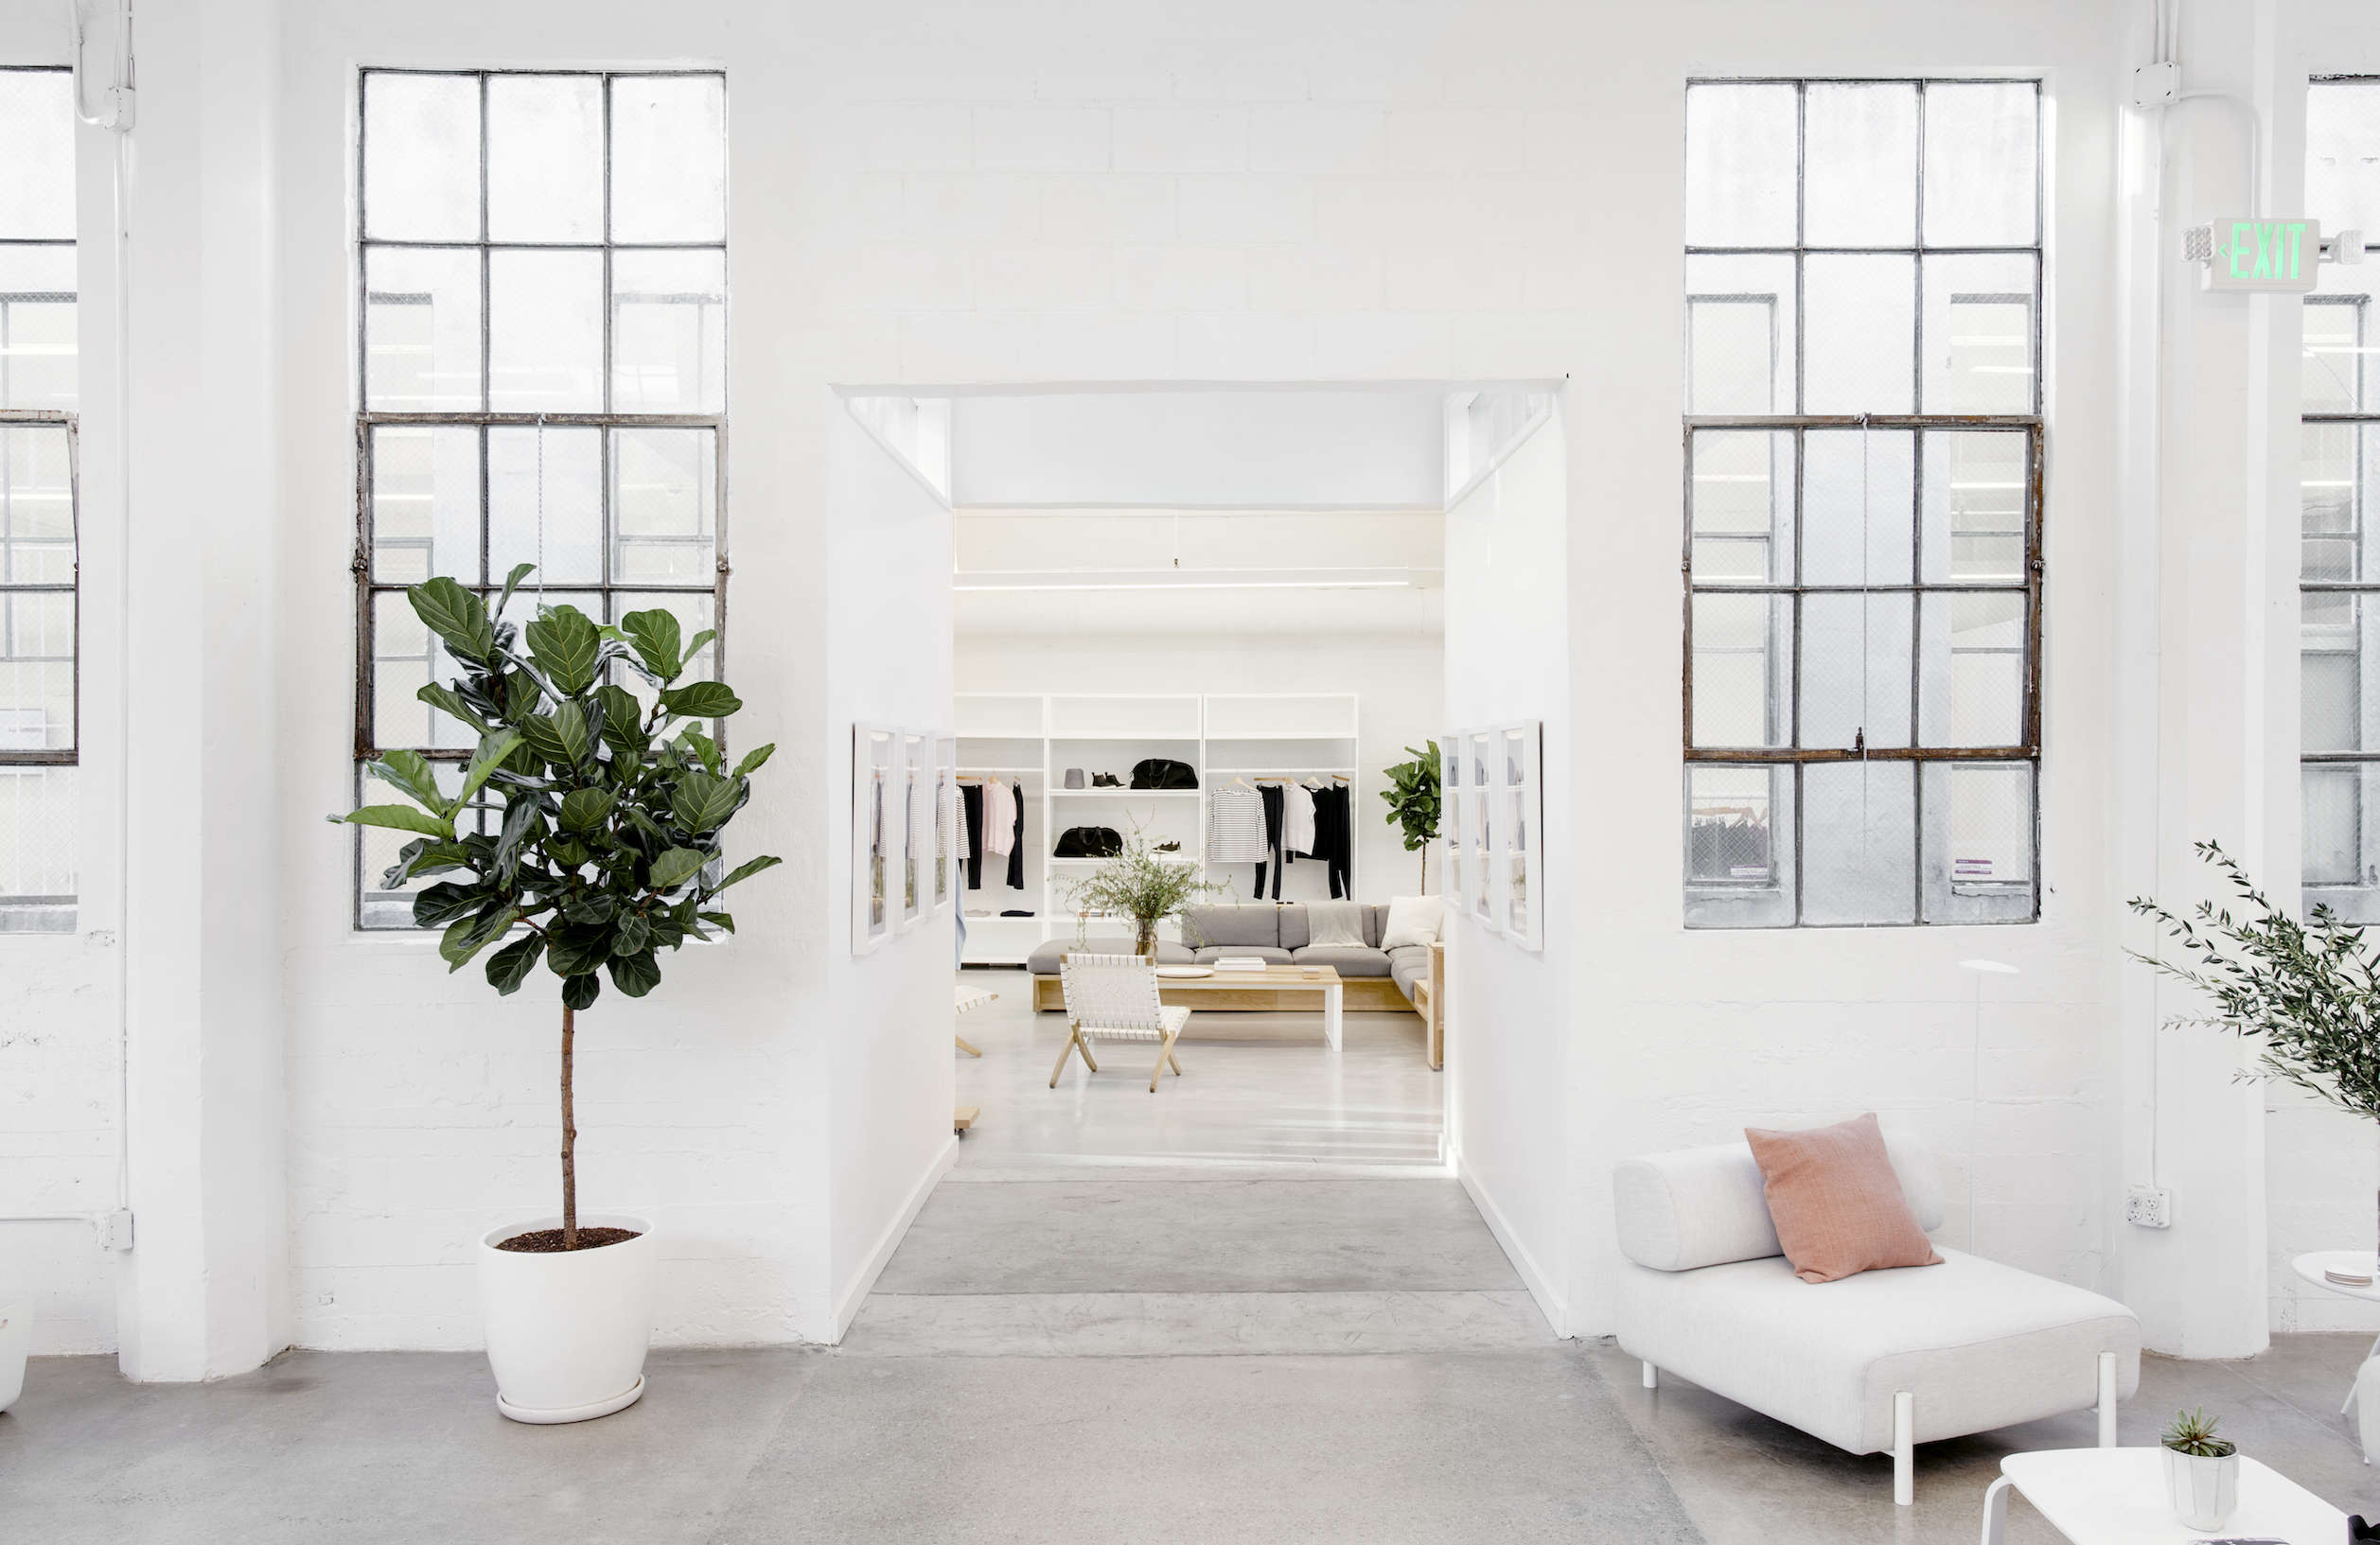 Everlane's headquarters in SF, Carlos Chavarría photo | Remodelista